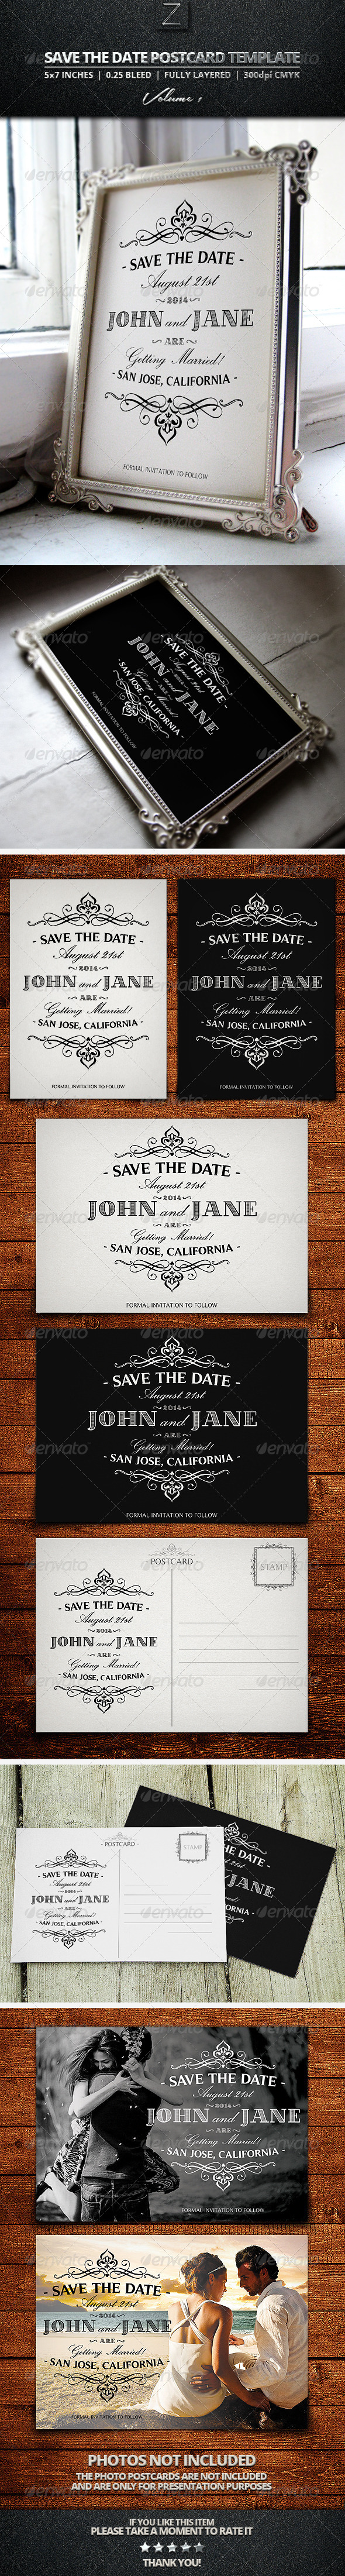 GraphicRiver Save The Date Postcard Templates Vol.1 7718675